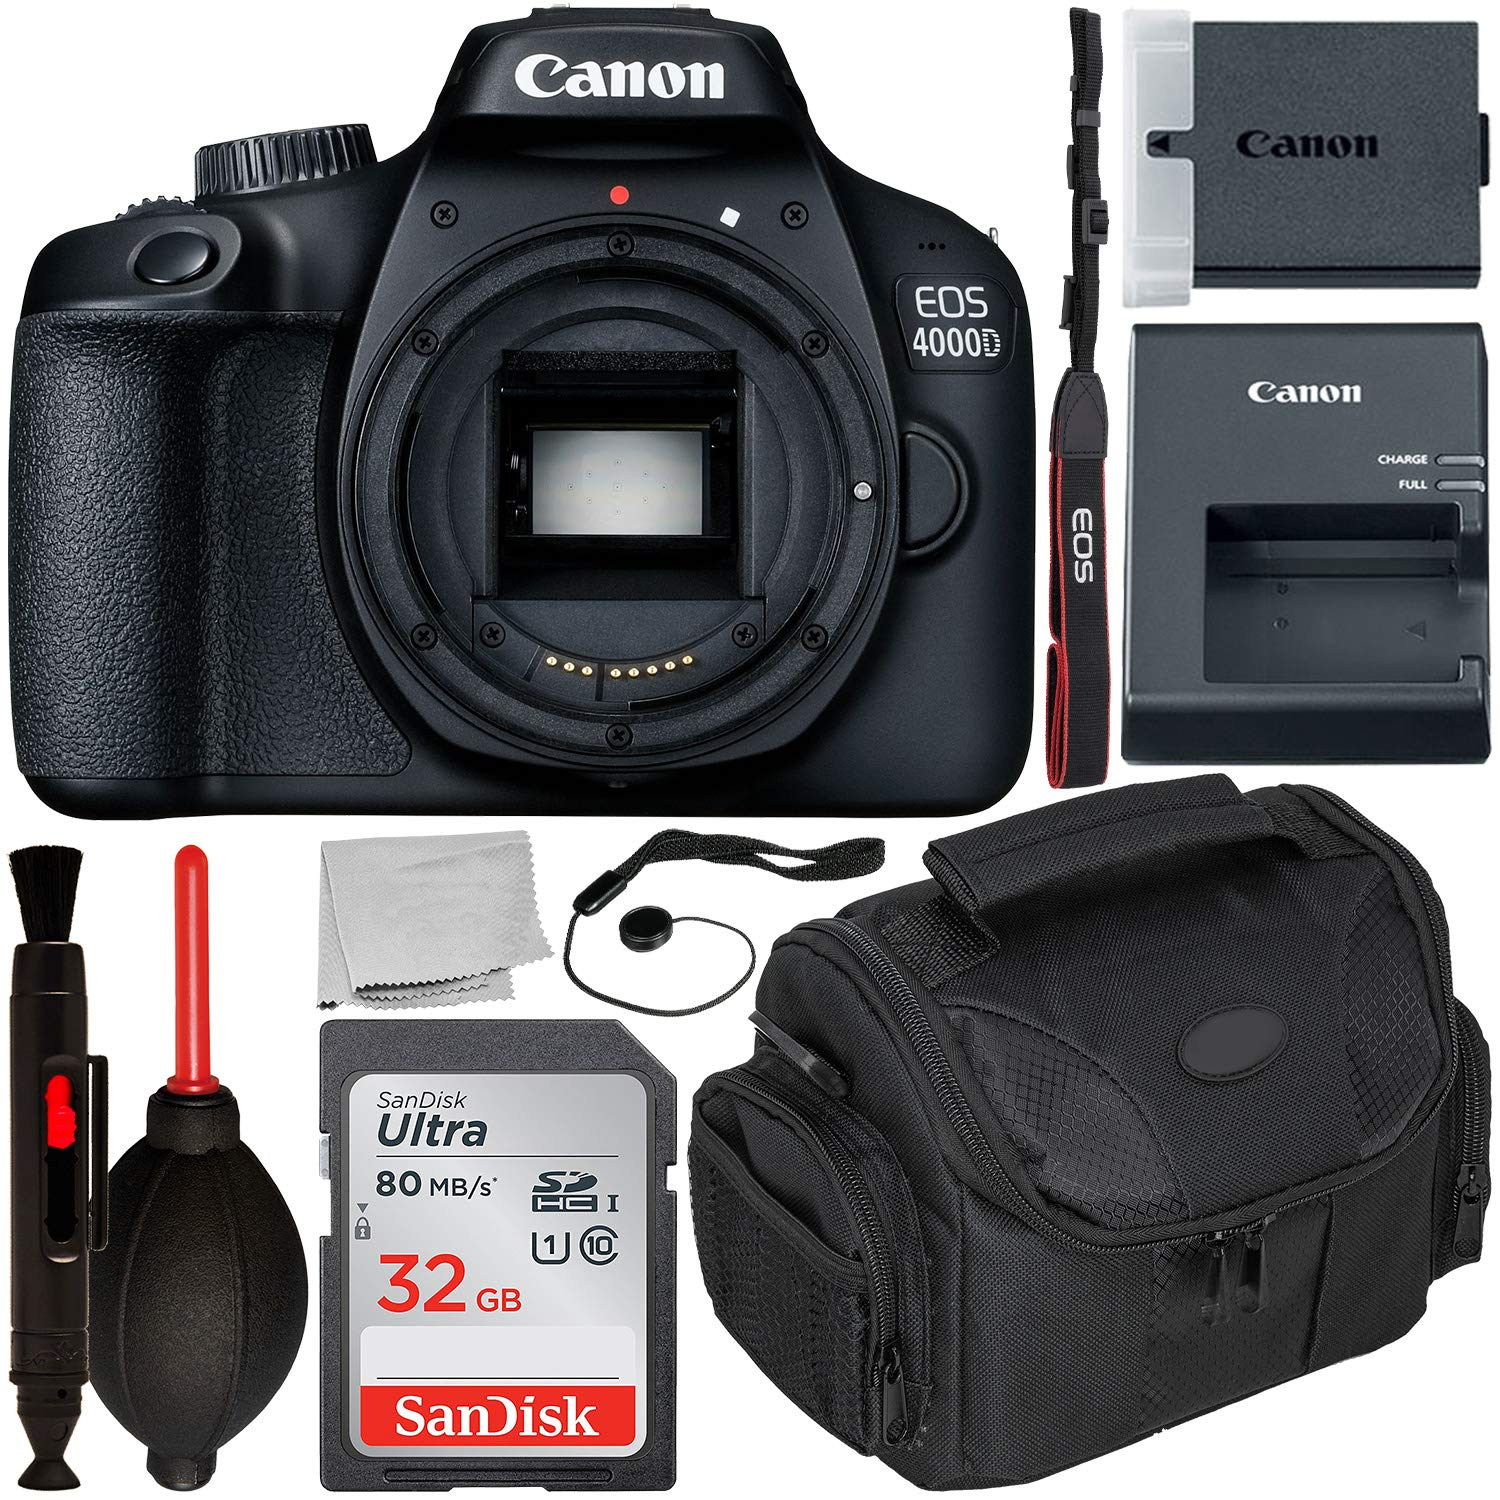 Canon EOS 4000D DSLR Camera (Body Only) with Starter Accessory Bundle - Includes: SanDisk Ultra 32GB SDHC Memory Card + Camera Carrying Case + Body Cap Keeper + Cleaning Pen + Dust Blower + More